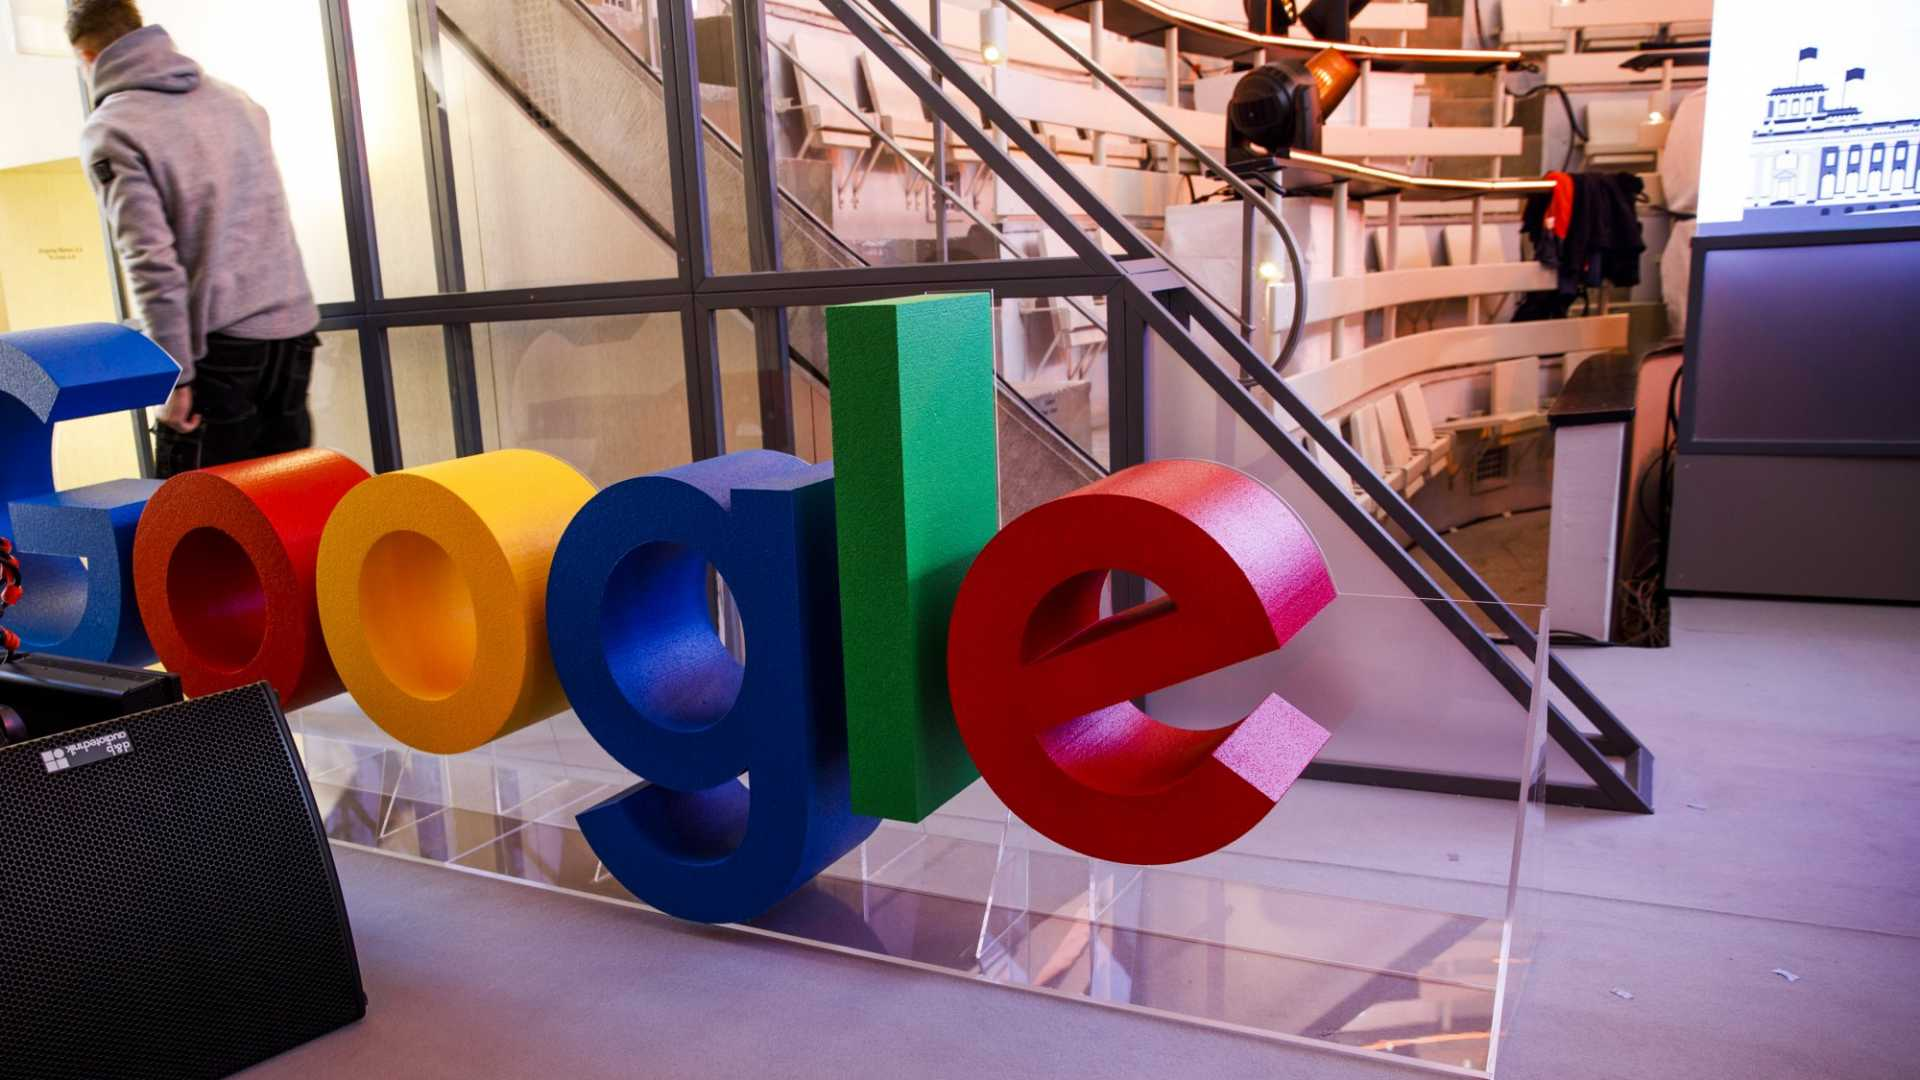 A French Data Protection Watchdog Is Fining Google $57 Million Under a New EU Law